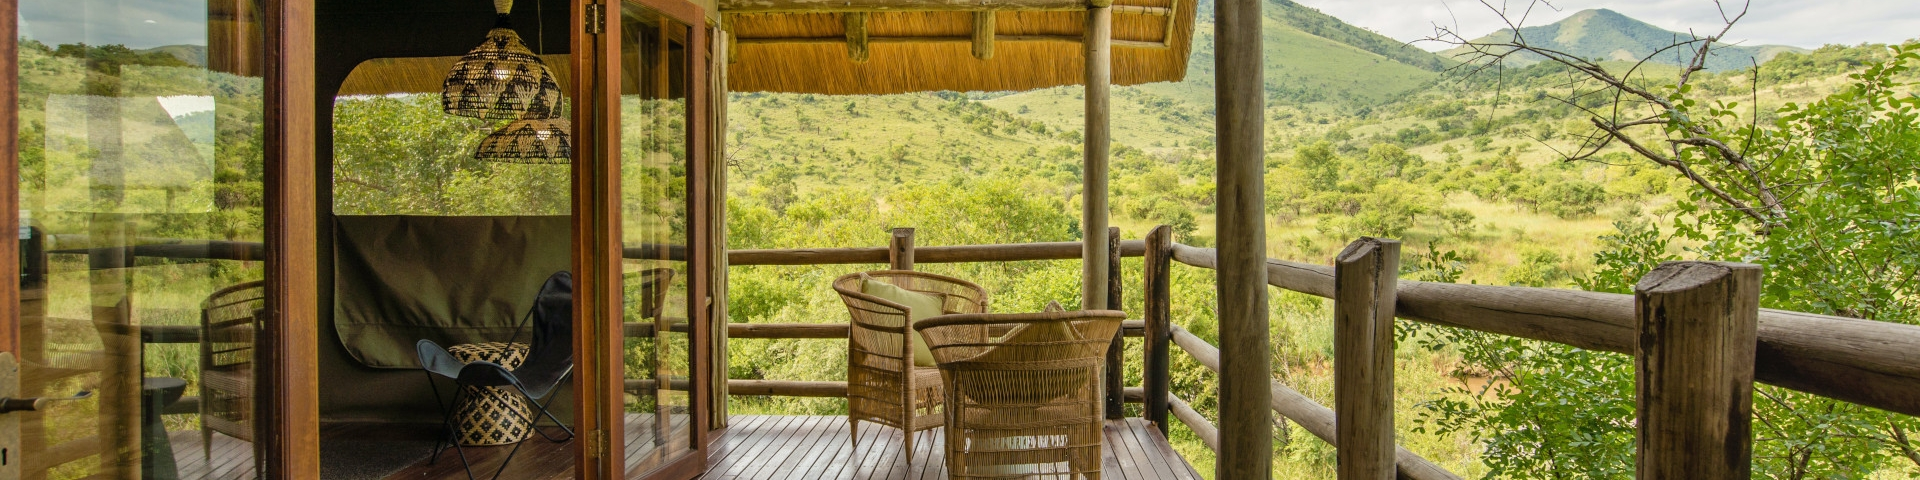 Accommodation in Mpumalanga Province - South Africa - View of Highveld